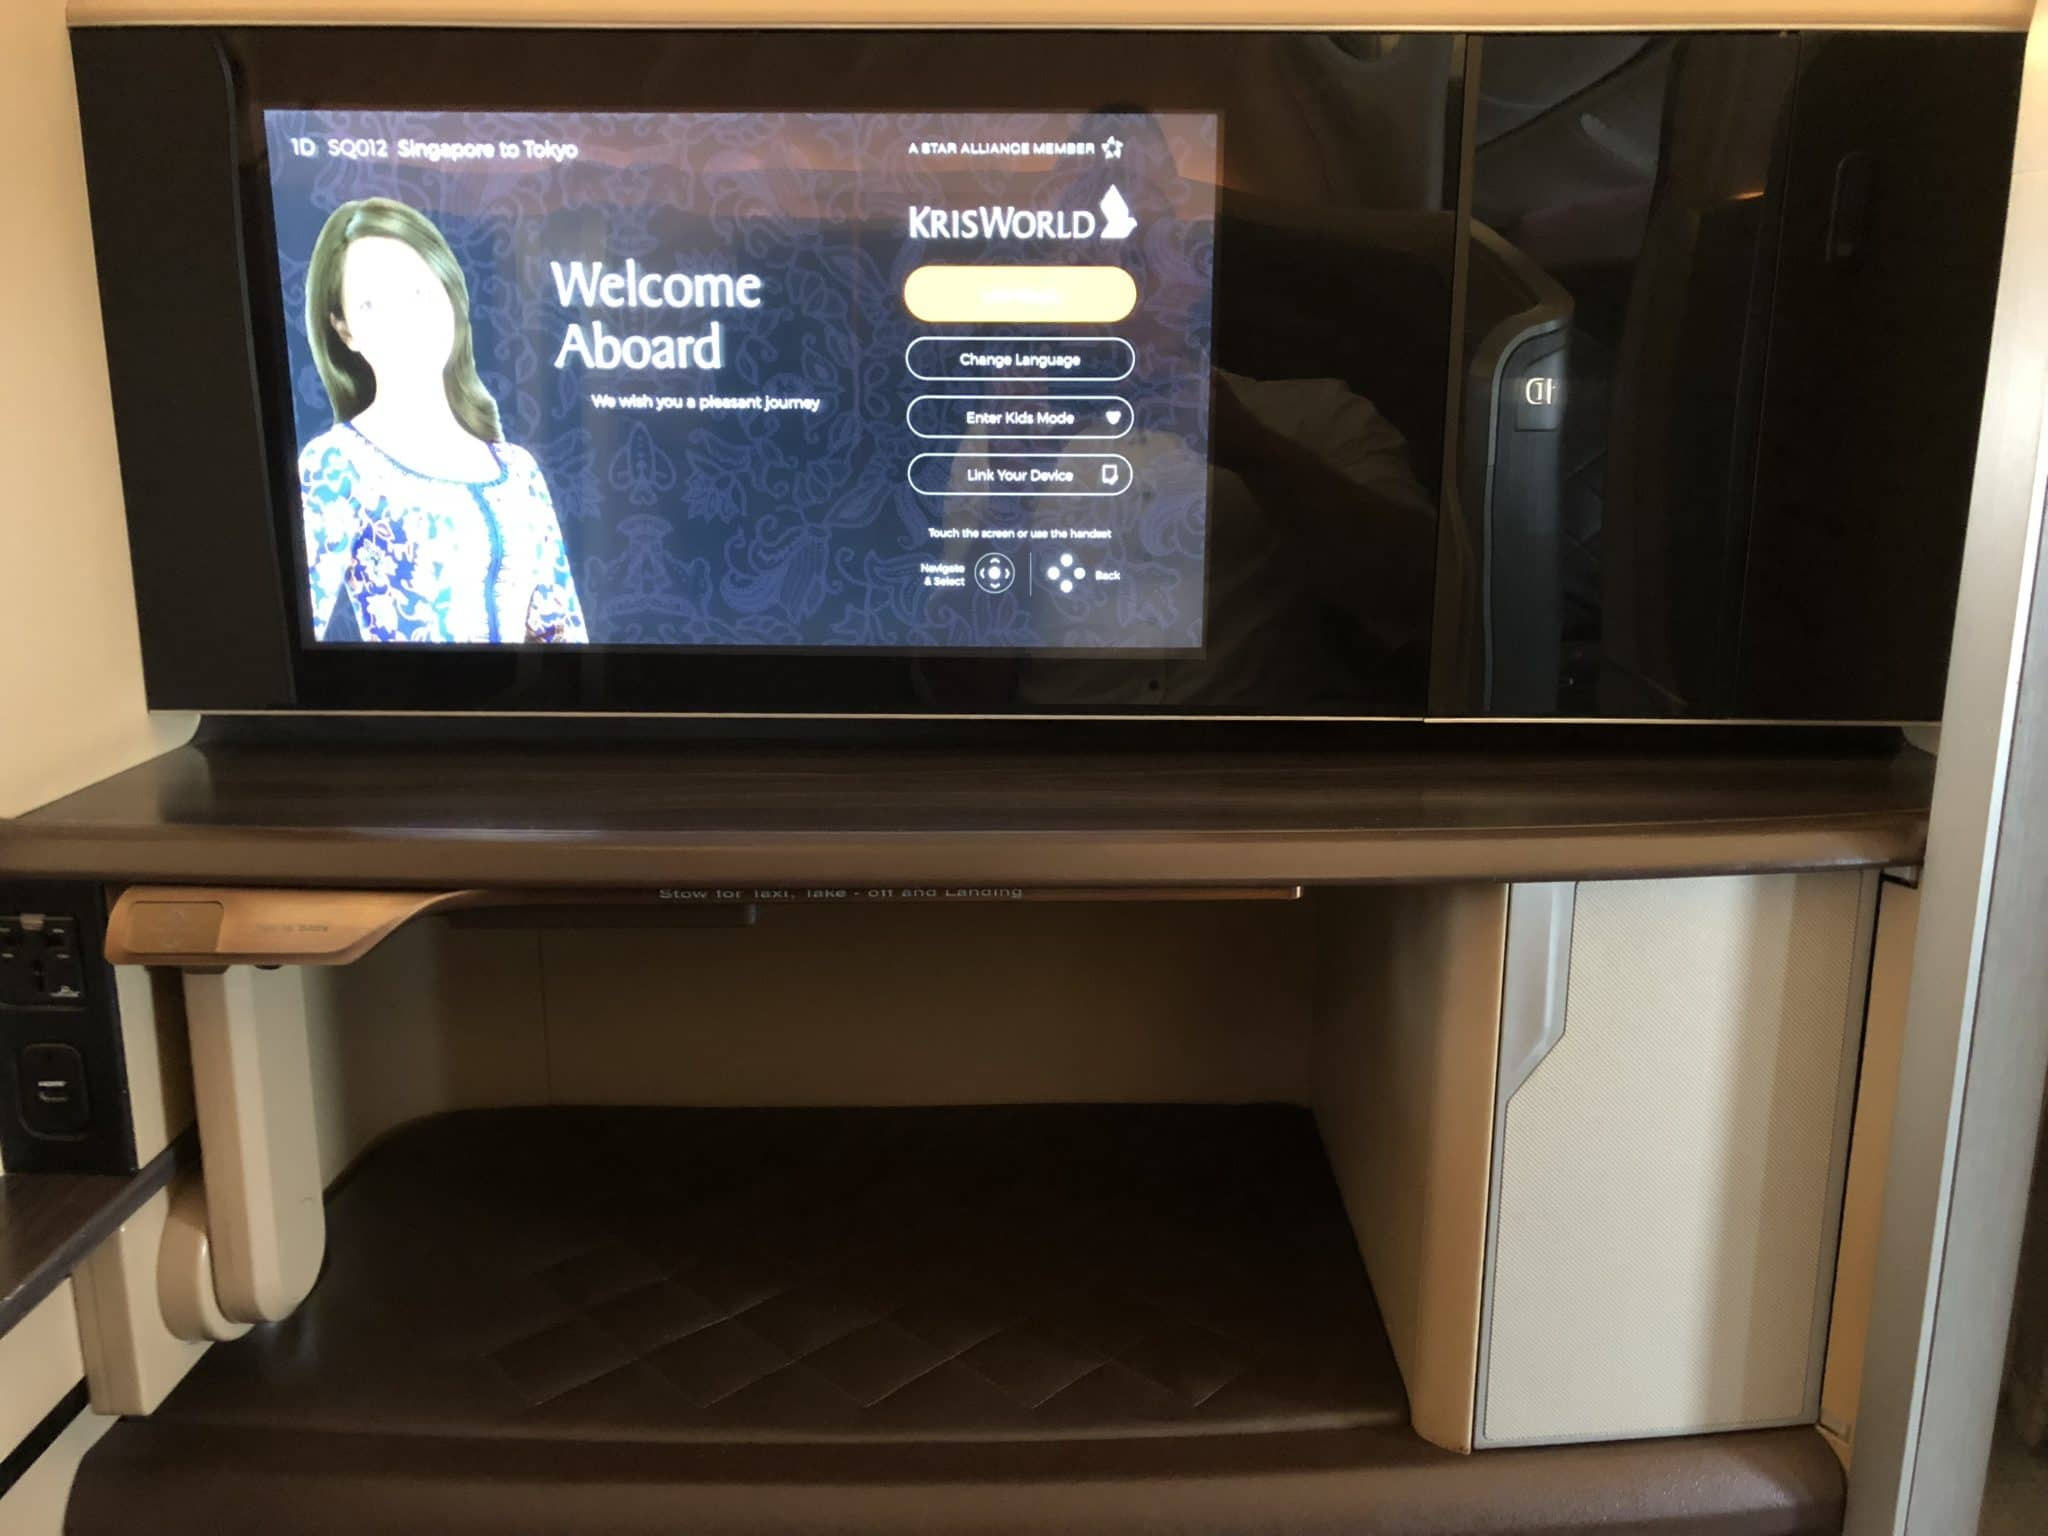 Singapore Airlines First Class Boeing 777-300 TV Monitor